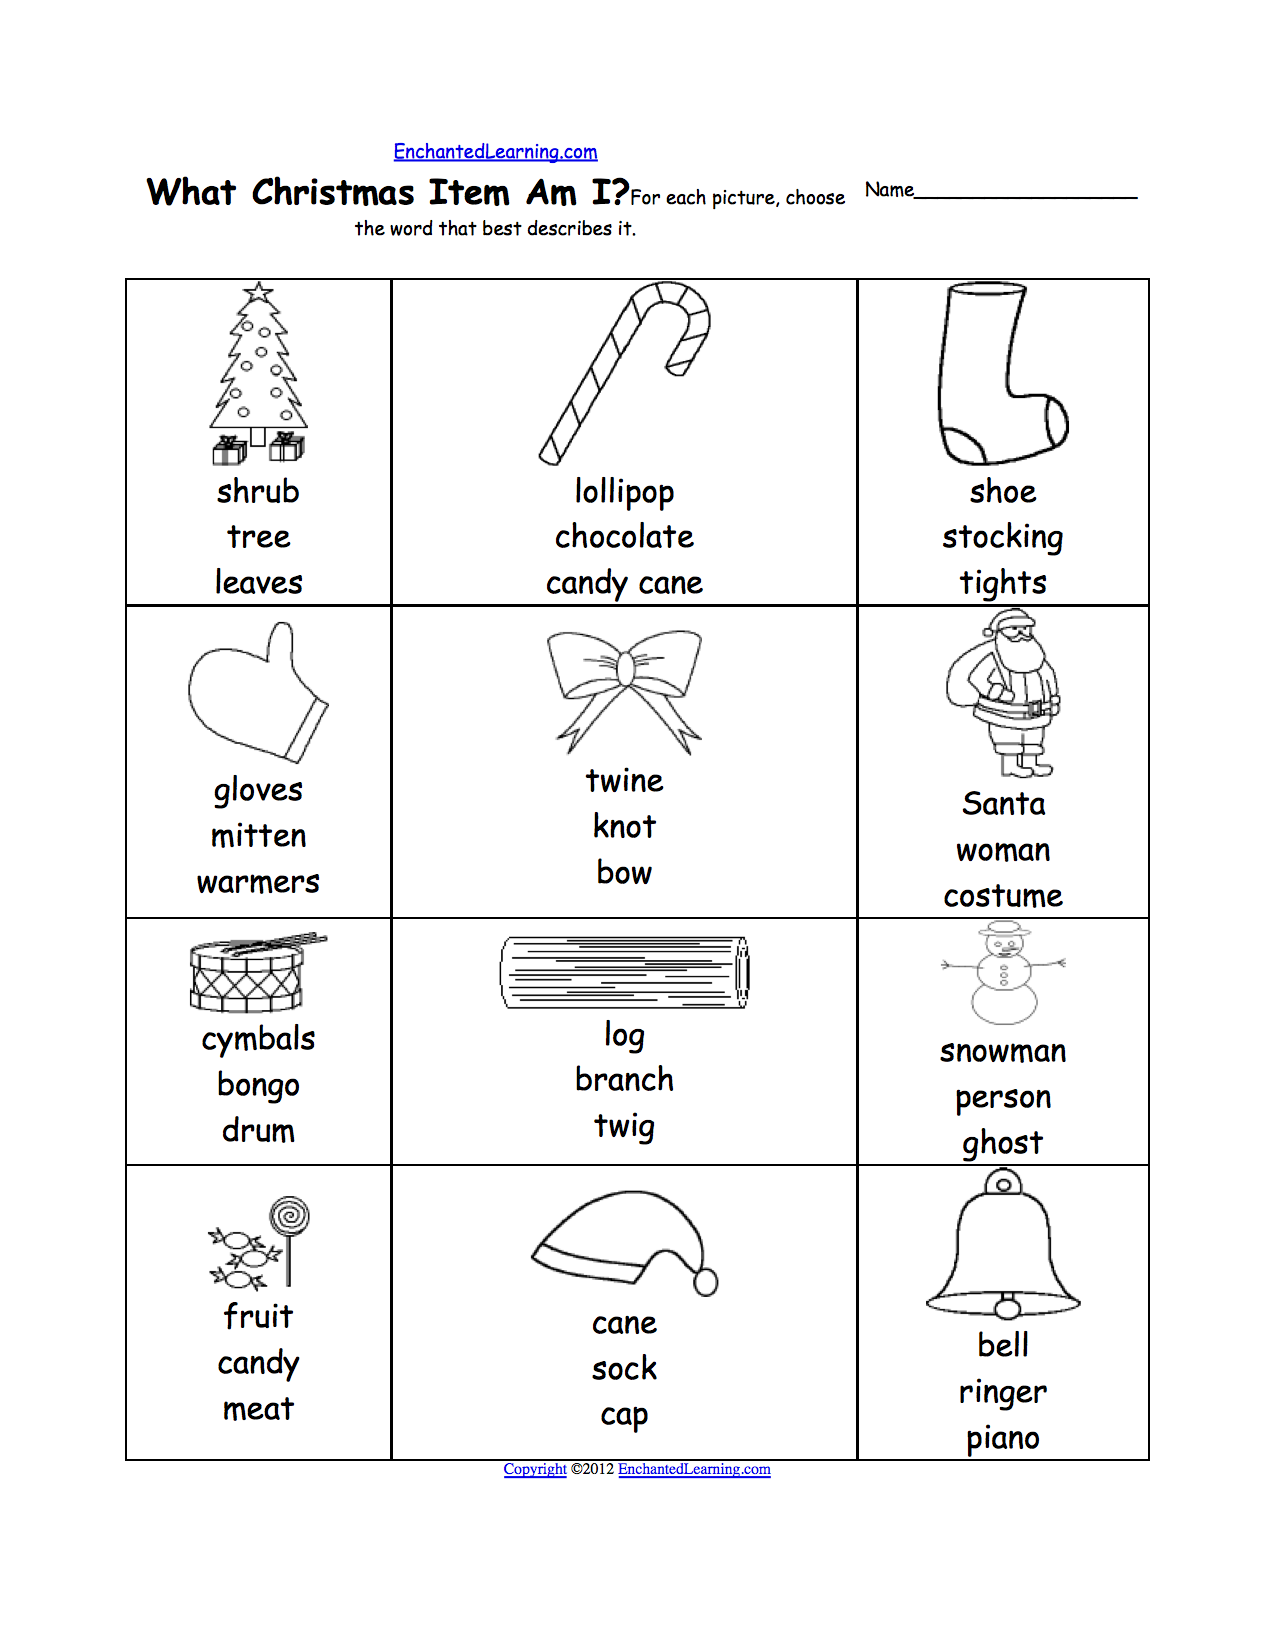 Worksheets Christmas Worksheets For Kids christmas crafts for kids enchantedlearning com